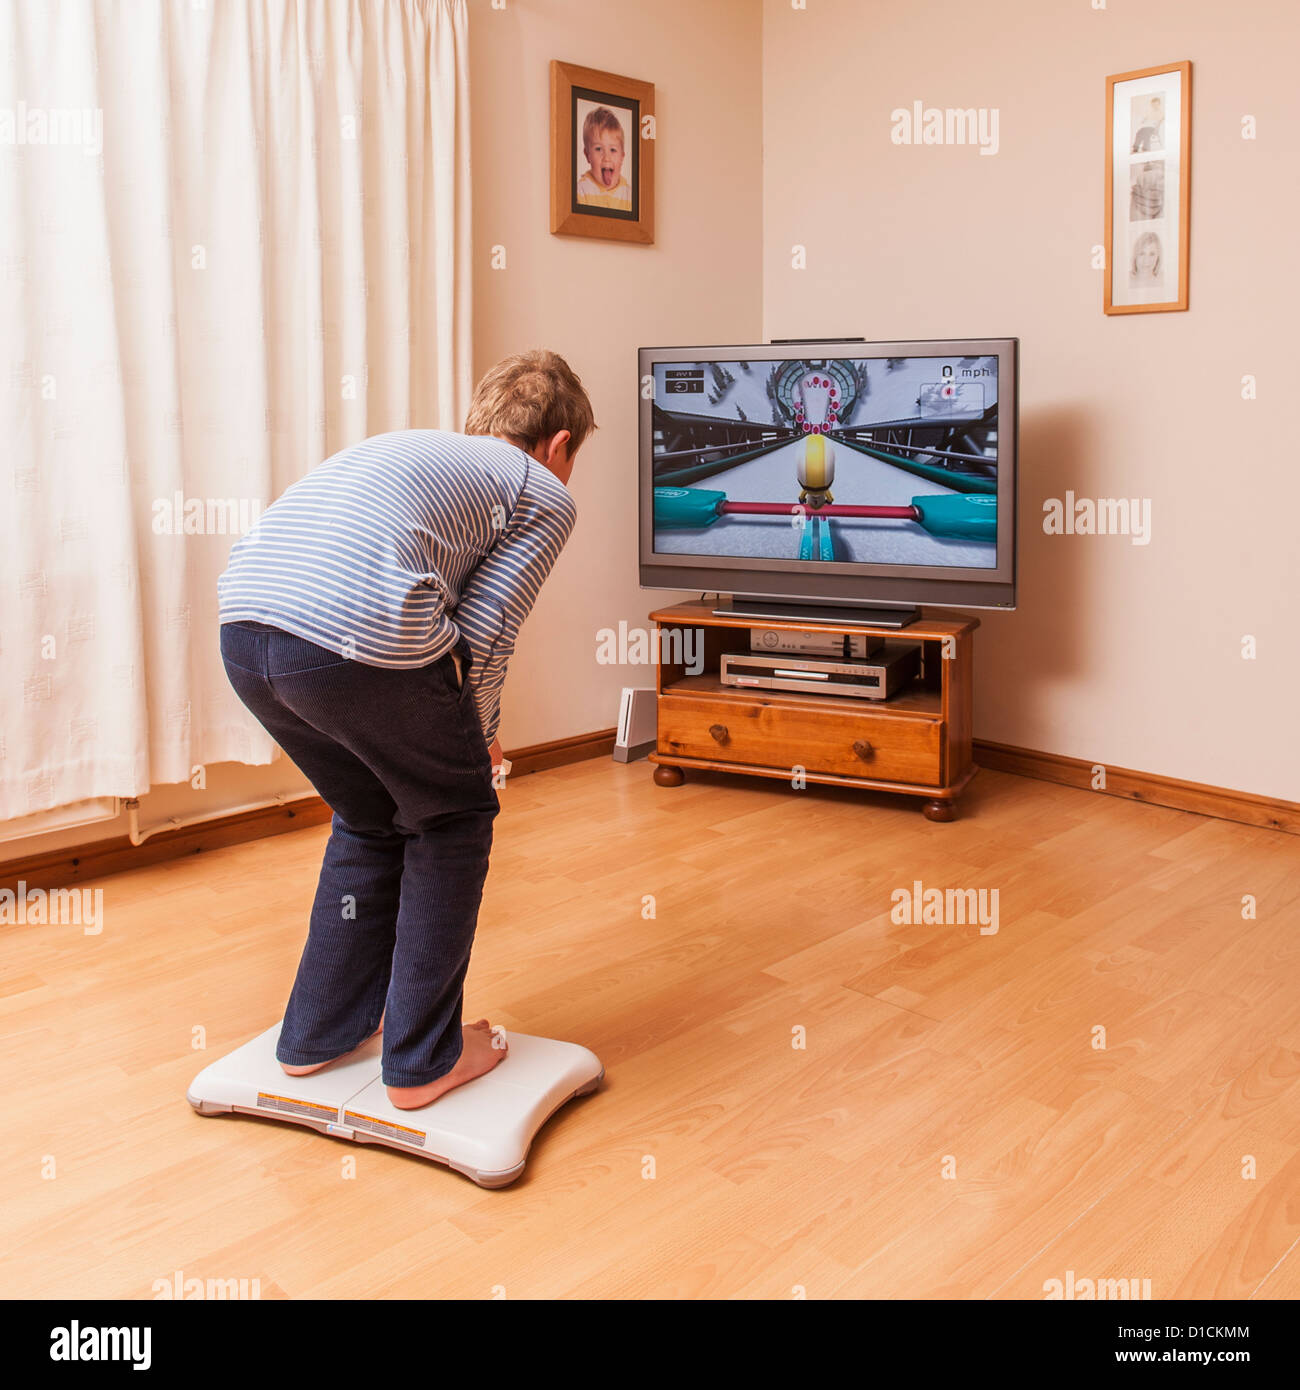 wii fit board instructions